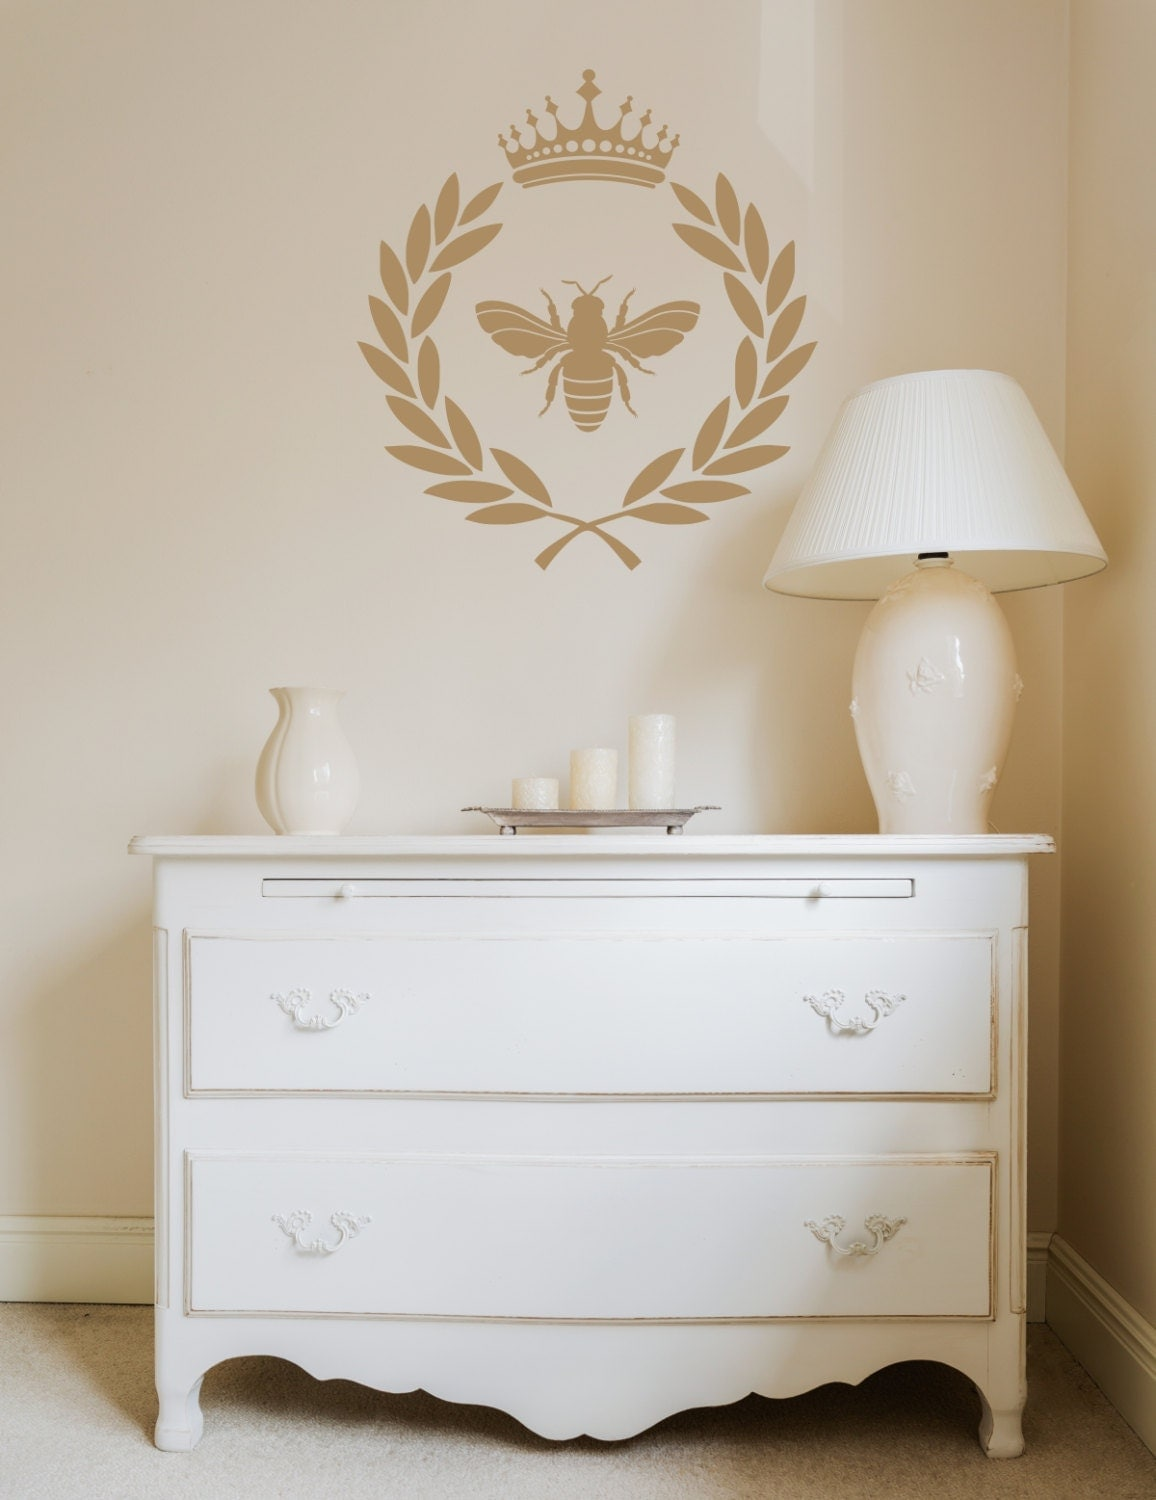 Laurel Wreath Crown Decal French Country Decor